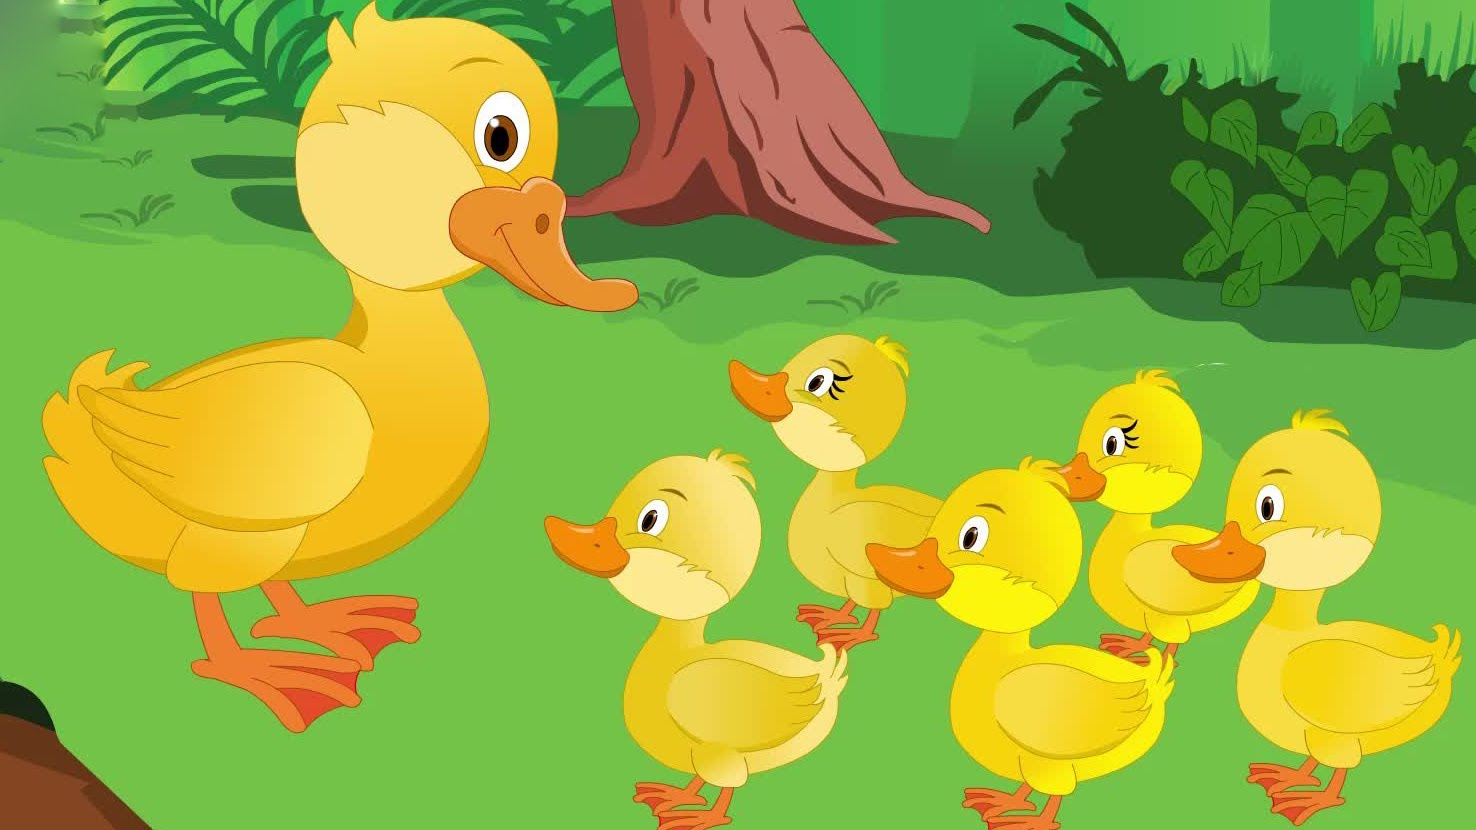 Went out clipart 20 free Cliparts | Download images on ...